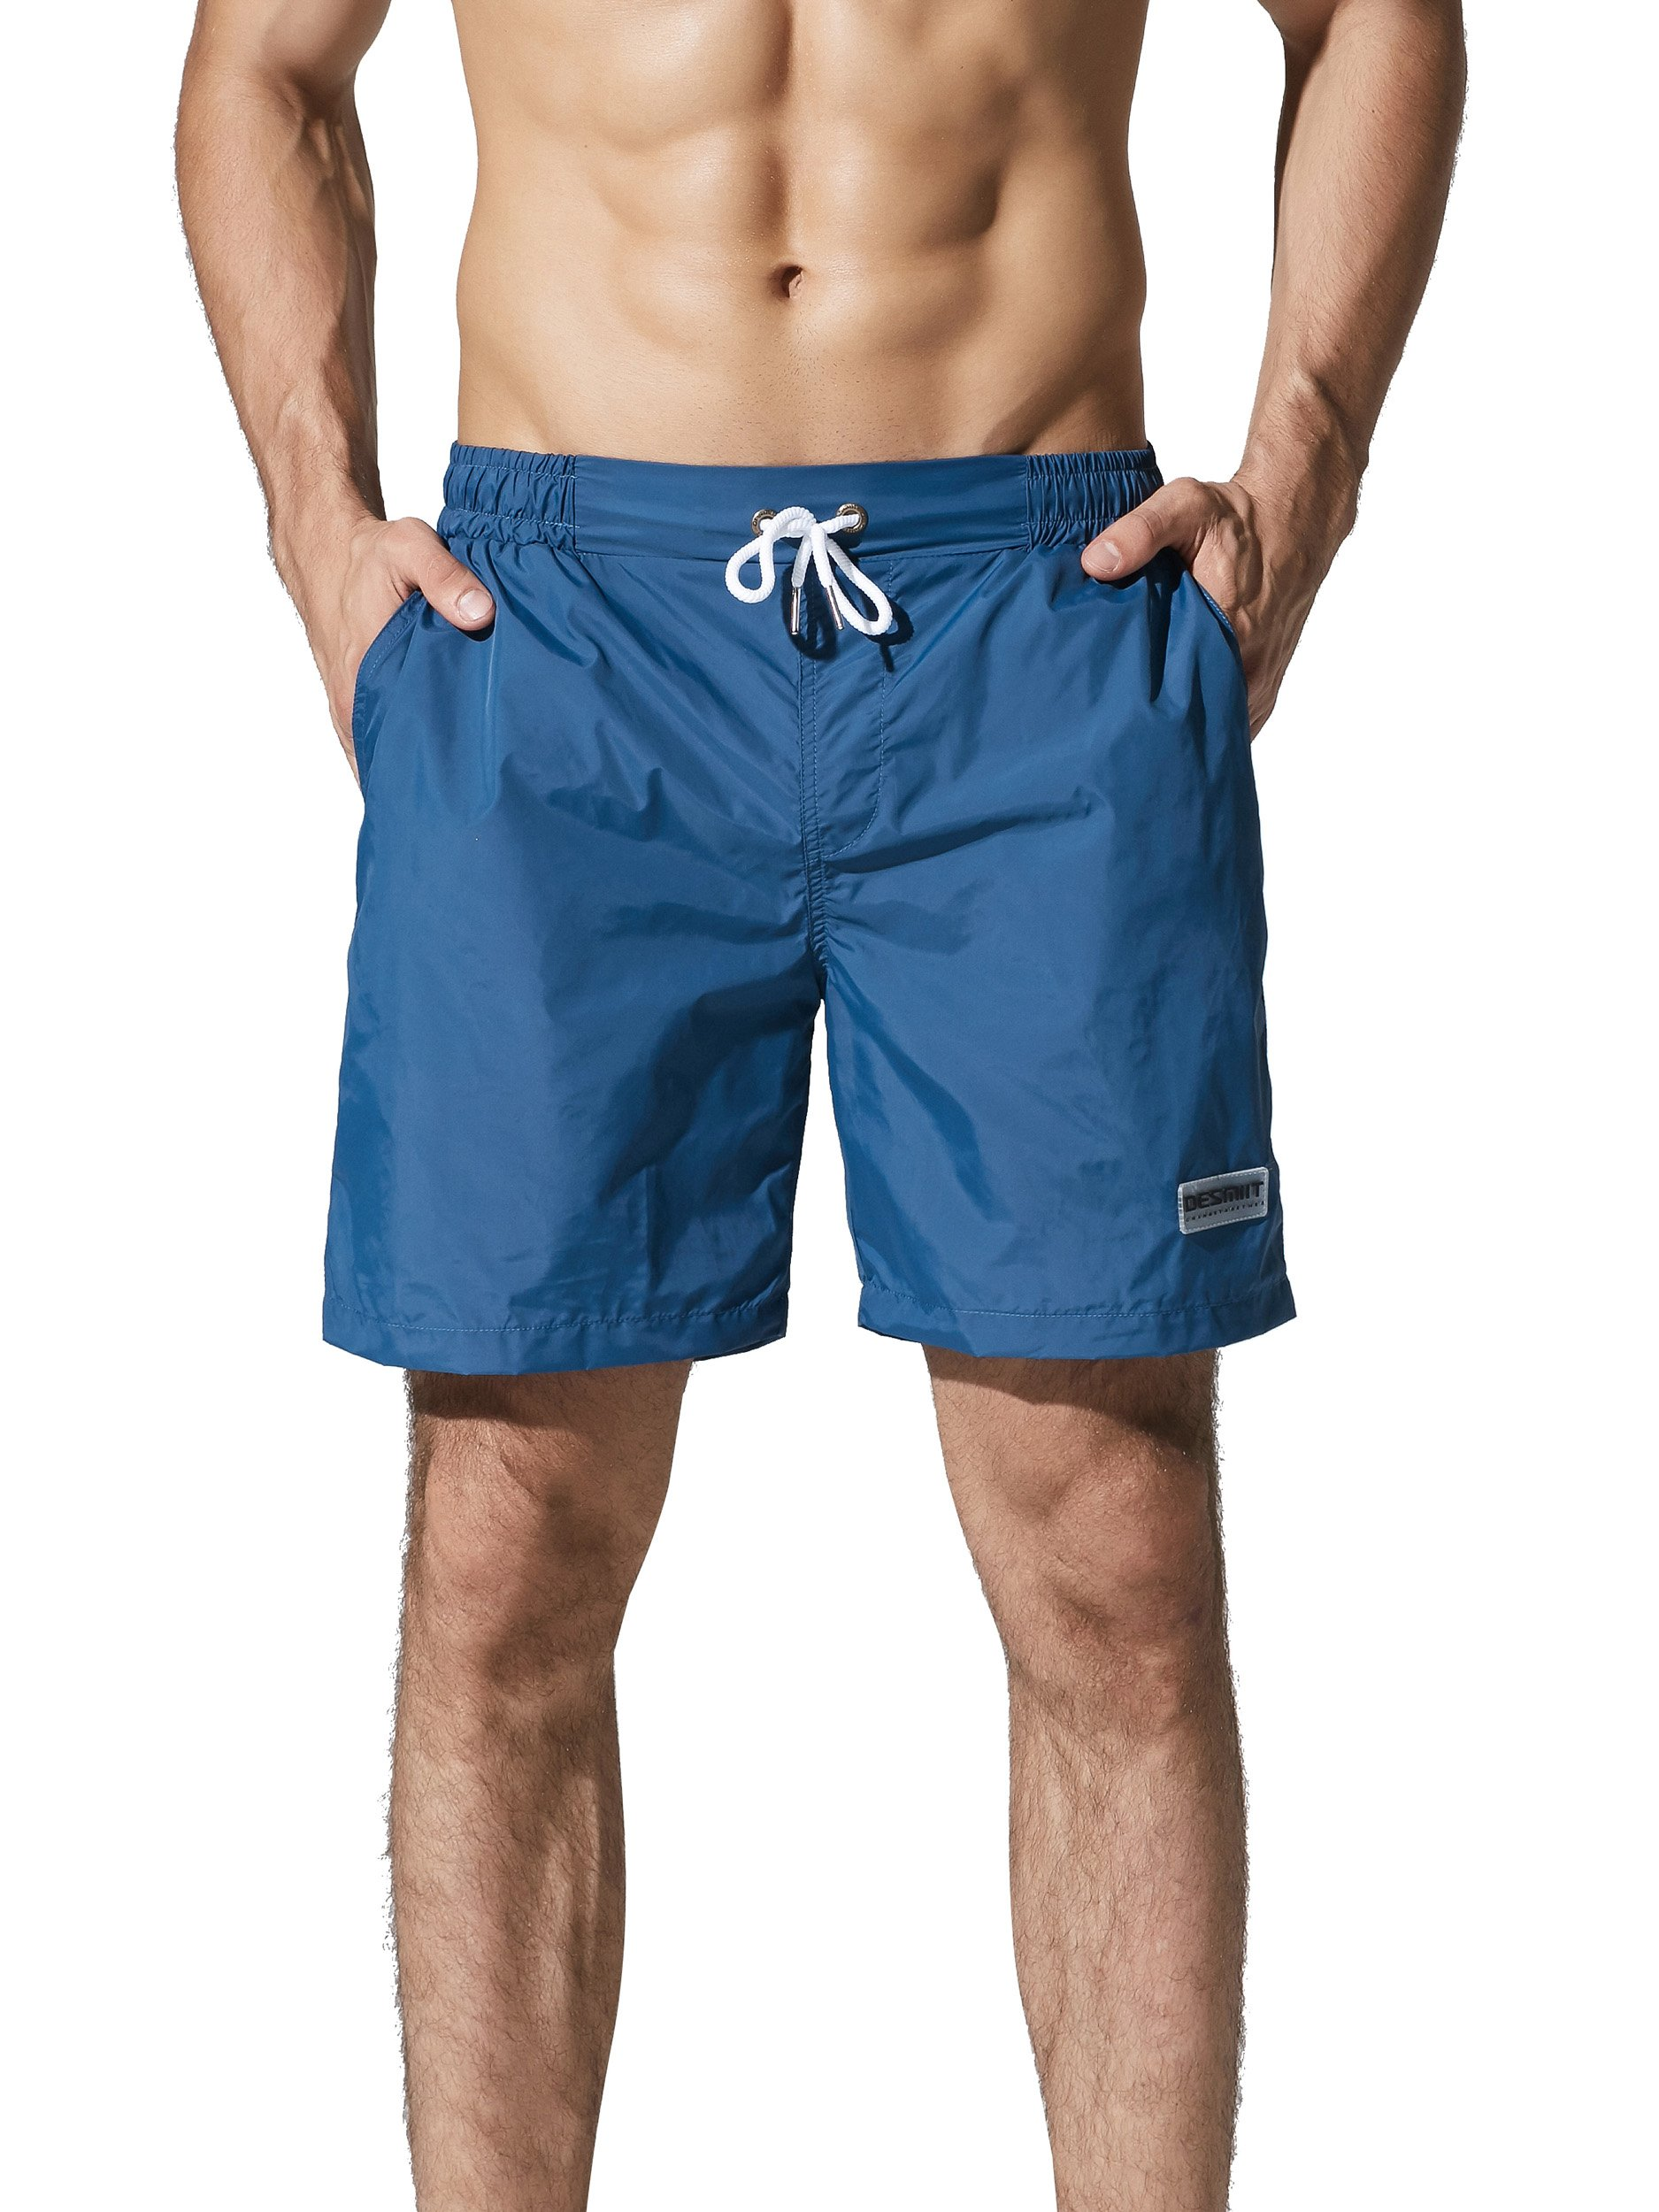 Neleus Men's 7'' Quick Dry Workout Running Short with Pockets,807,Navy Blue,M,Tag XL